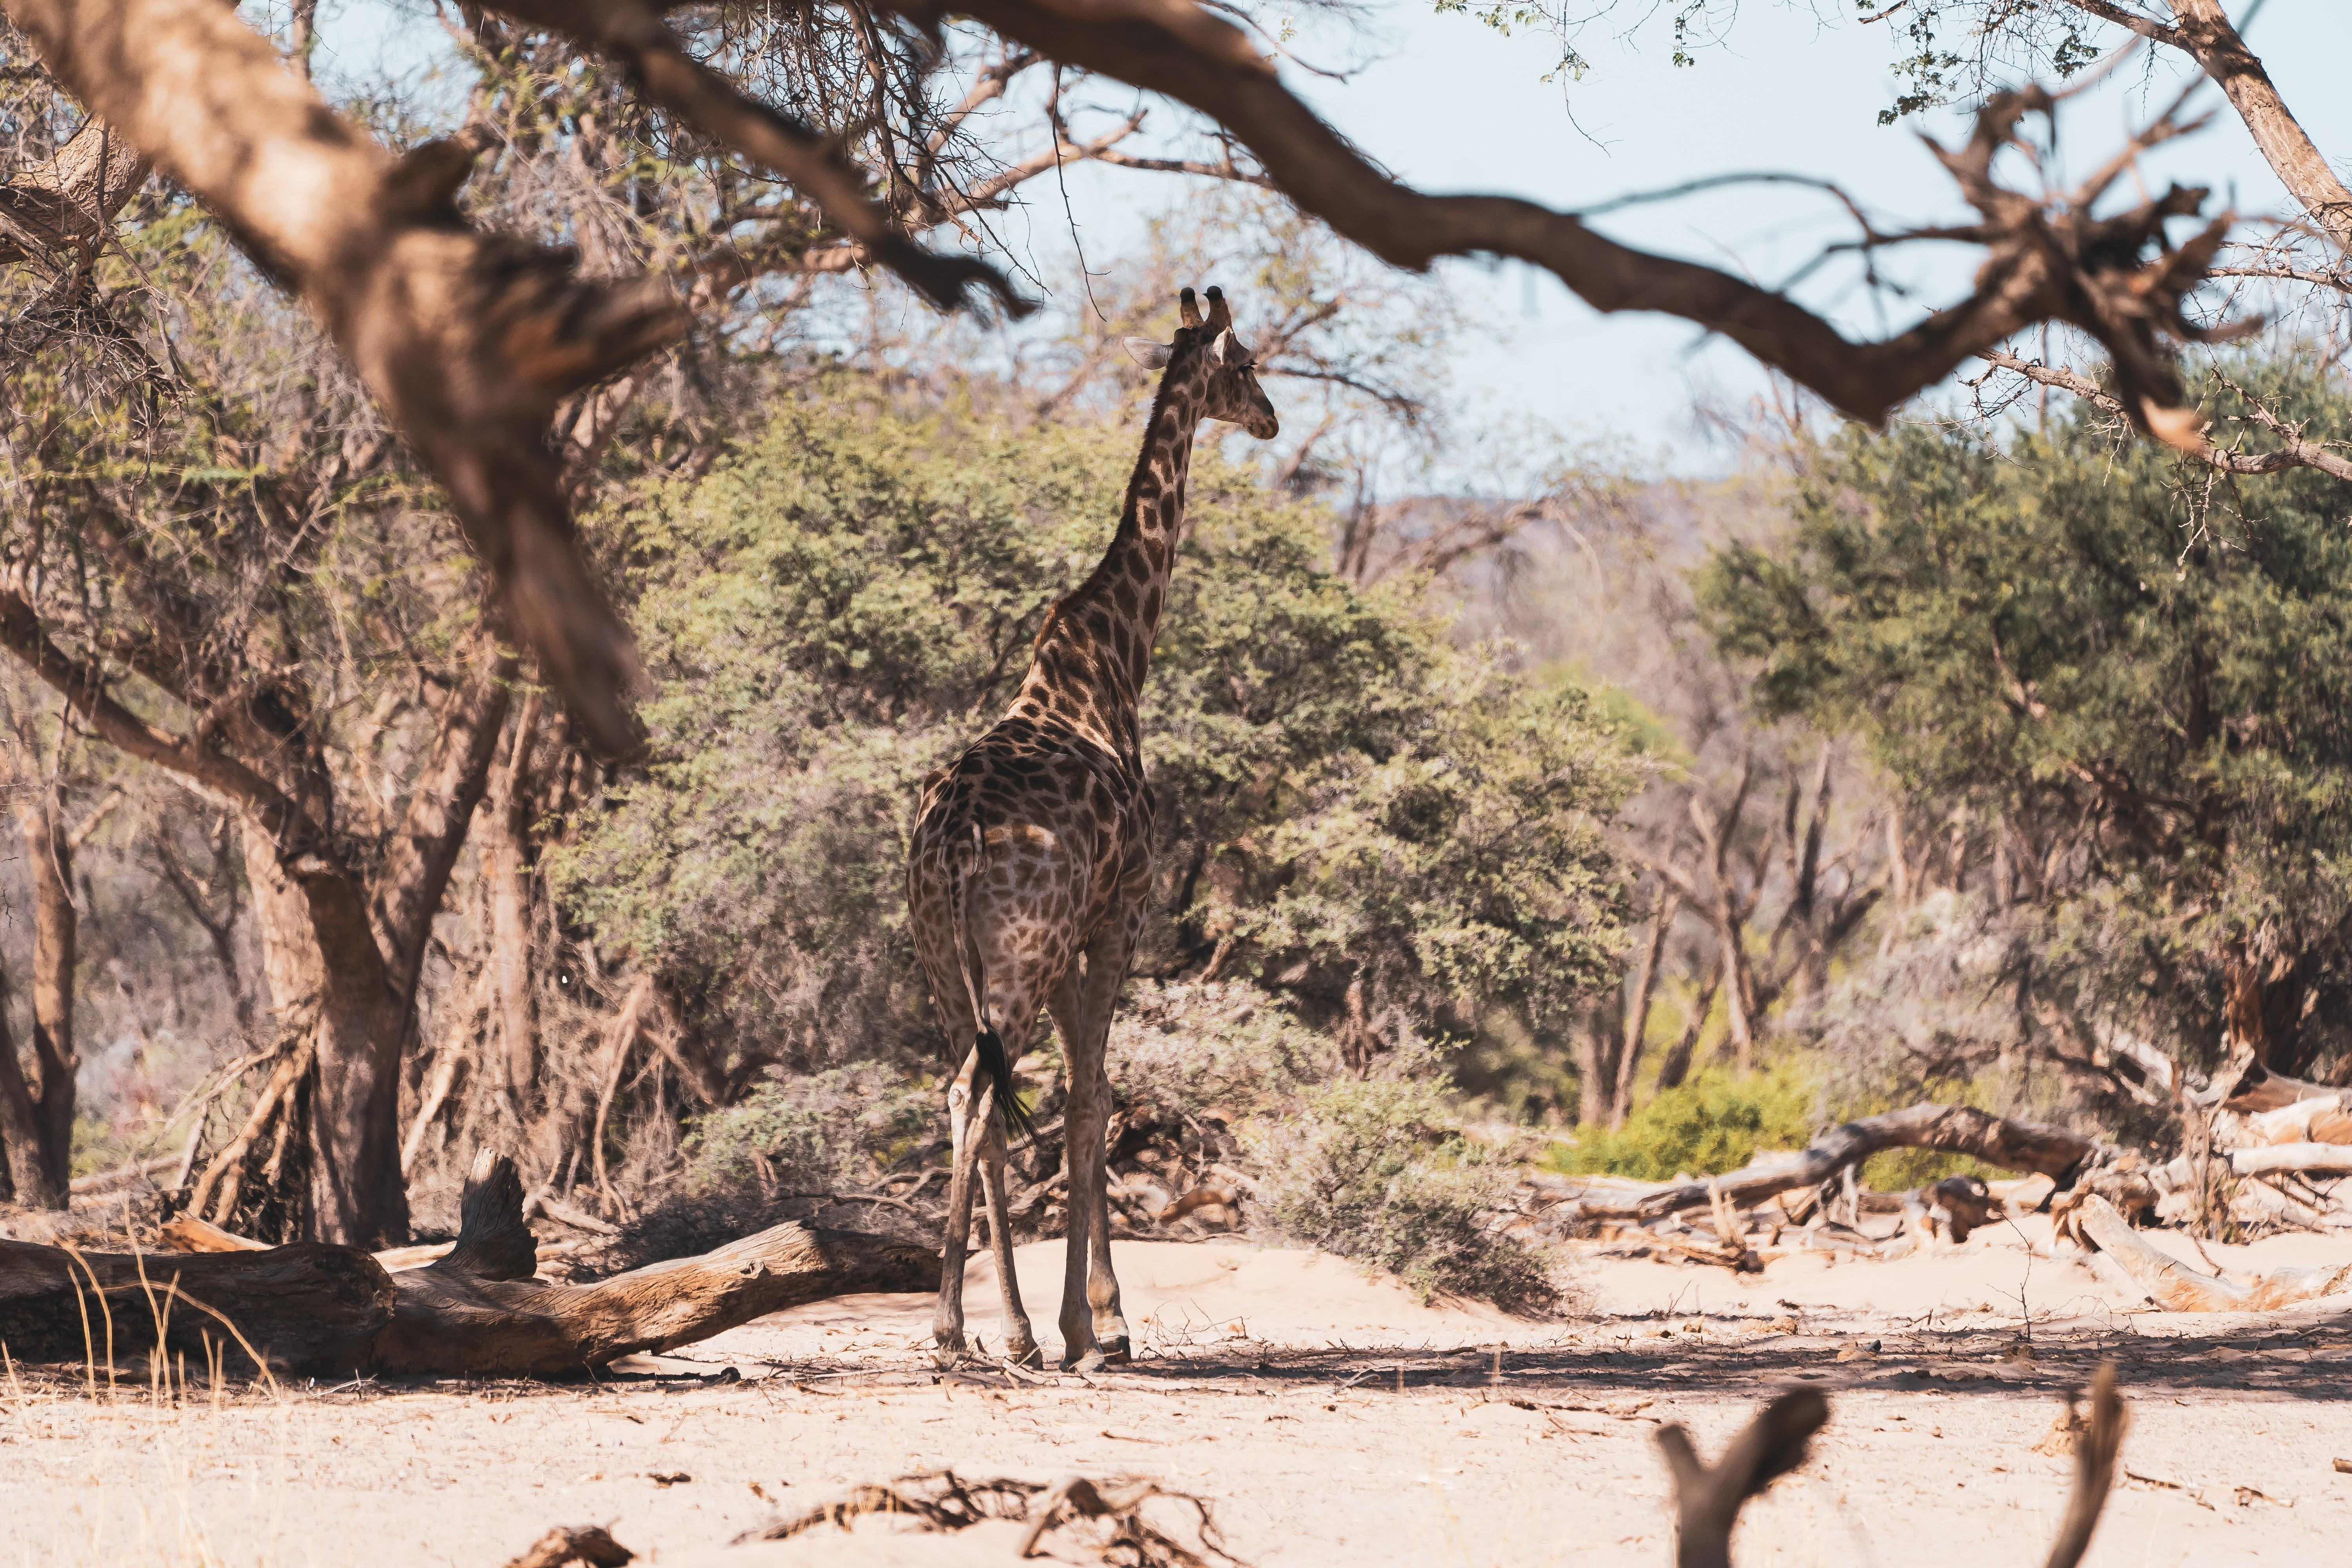 this is a giraffe in its natural habitat. The WWF has emphasised the need for measures to protect the world's biodiversity